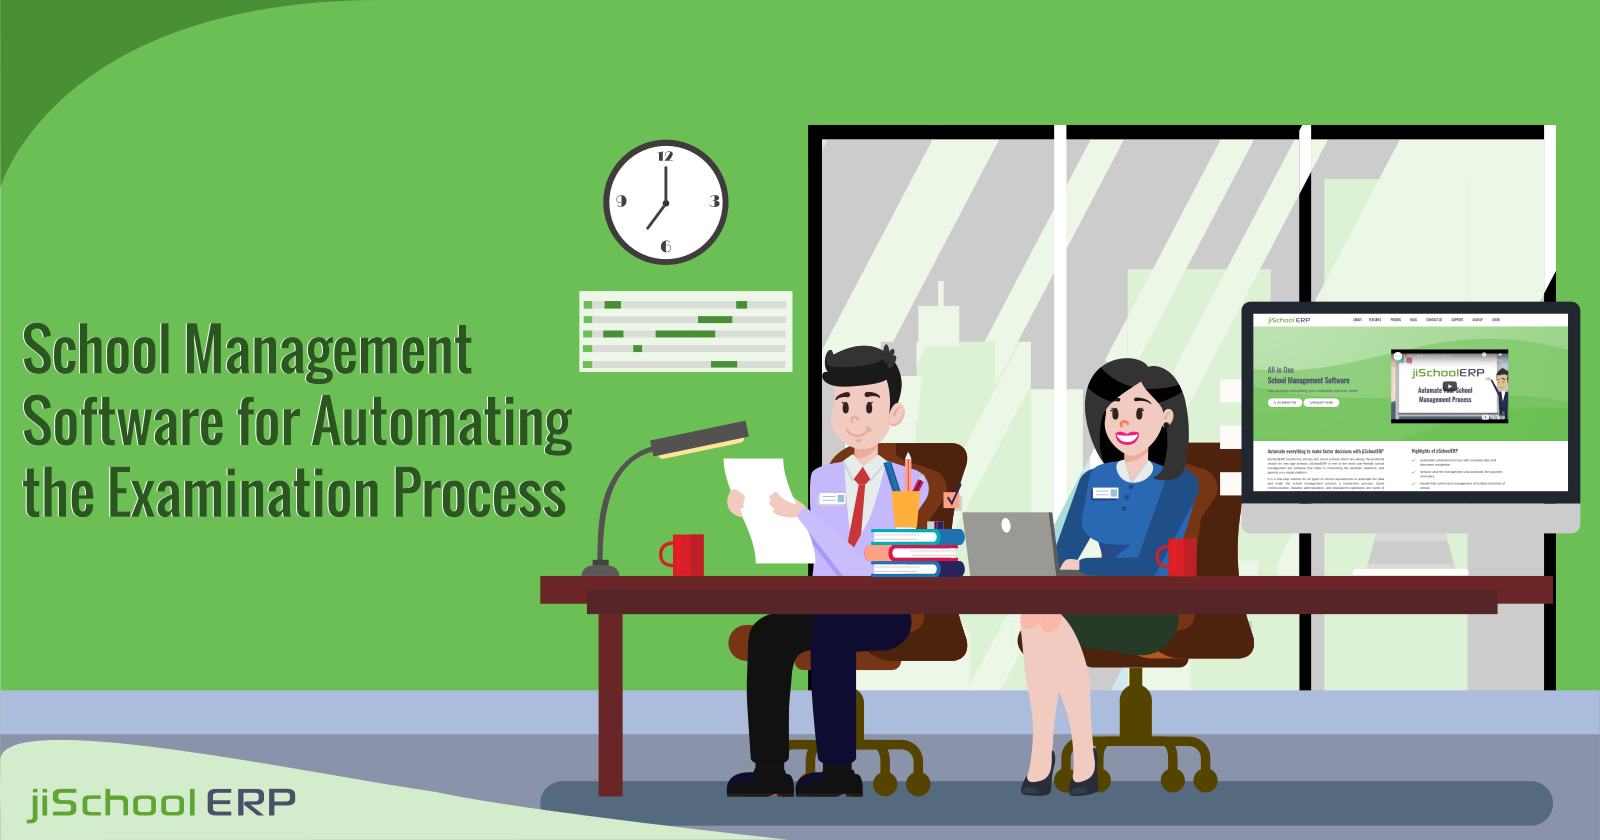 School Management Software for Automating the Examination Process